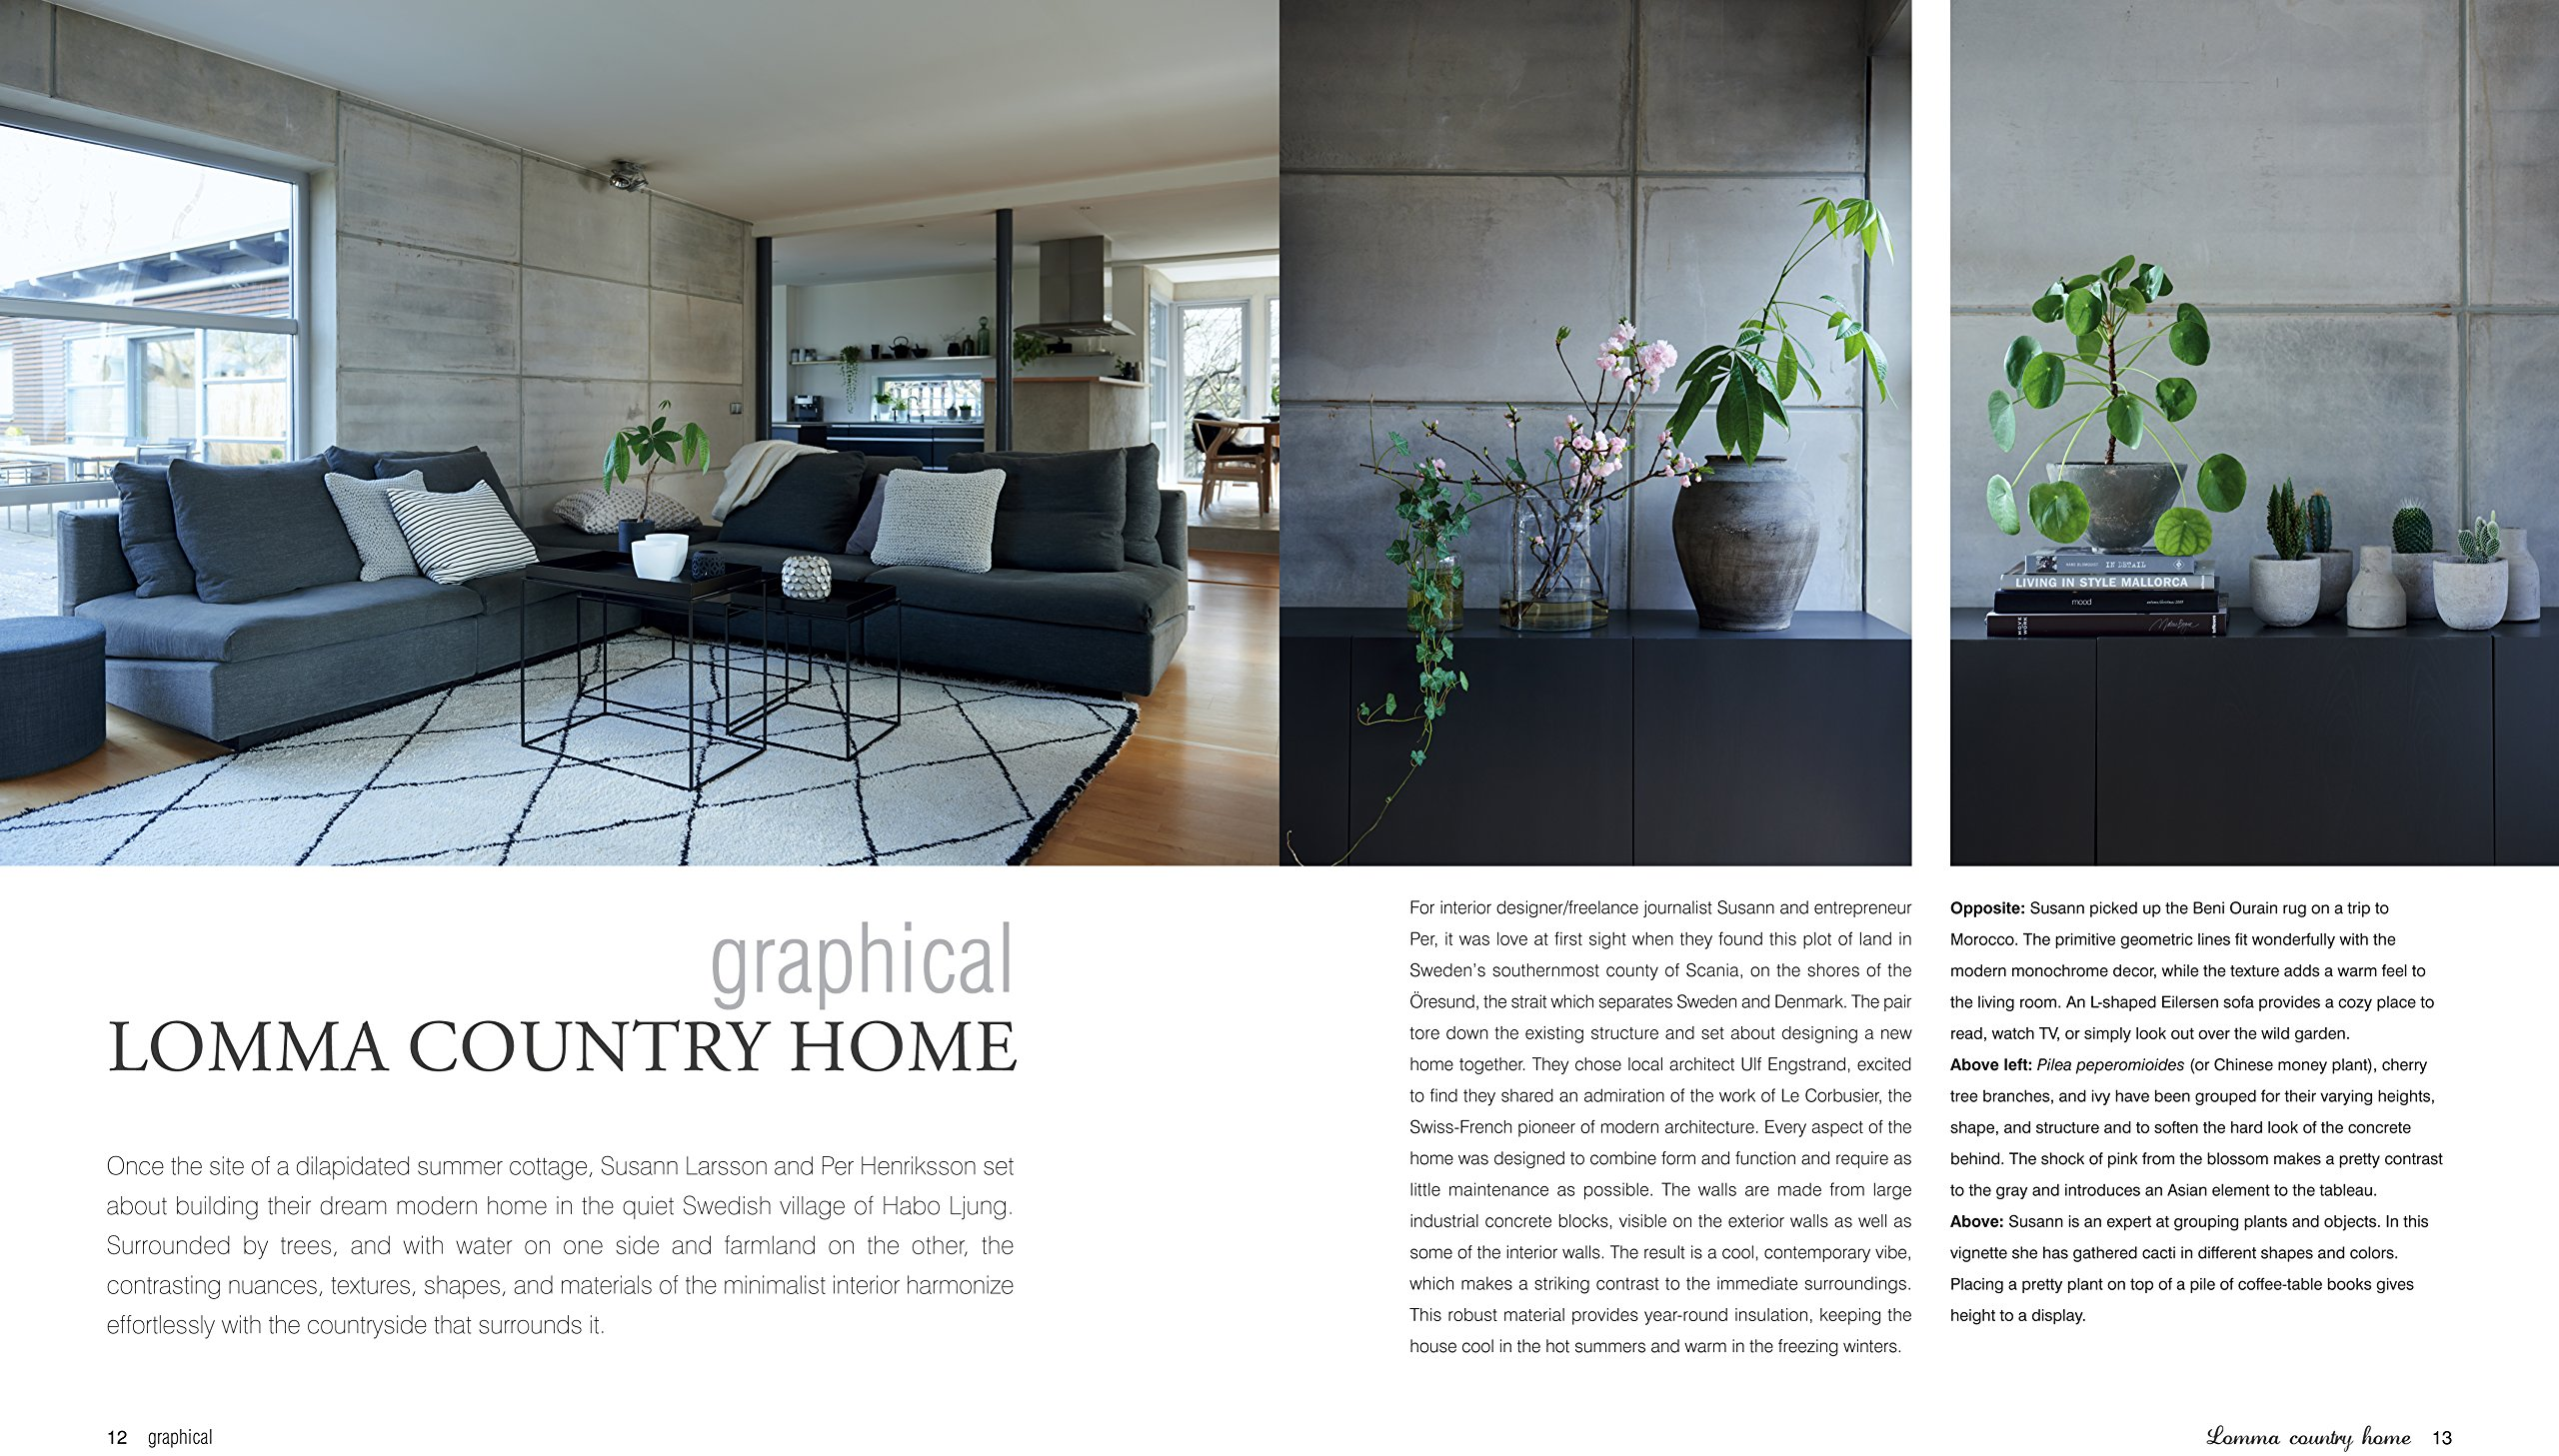 modern pastoral bring the tranquility of nature into your home modern pastoral bring the tranquility of nature into your home niki brantmark 9781782493082 amazon com books